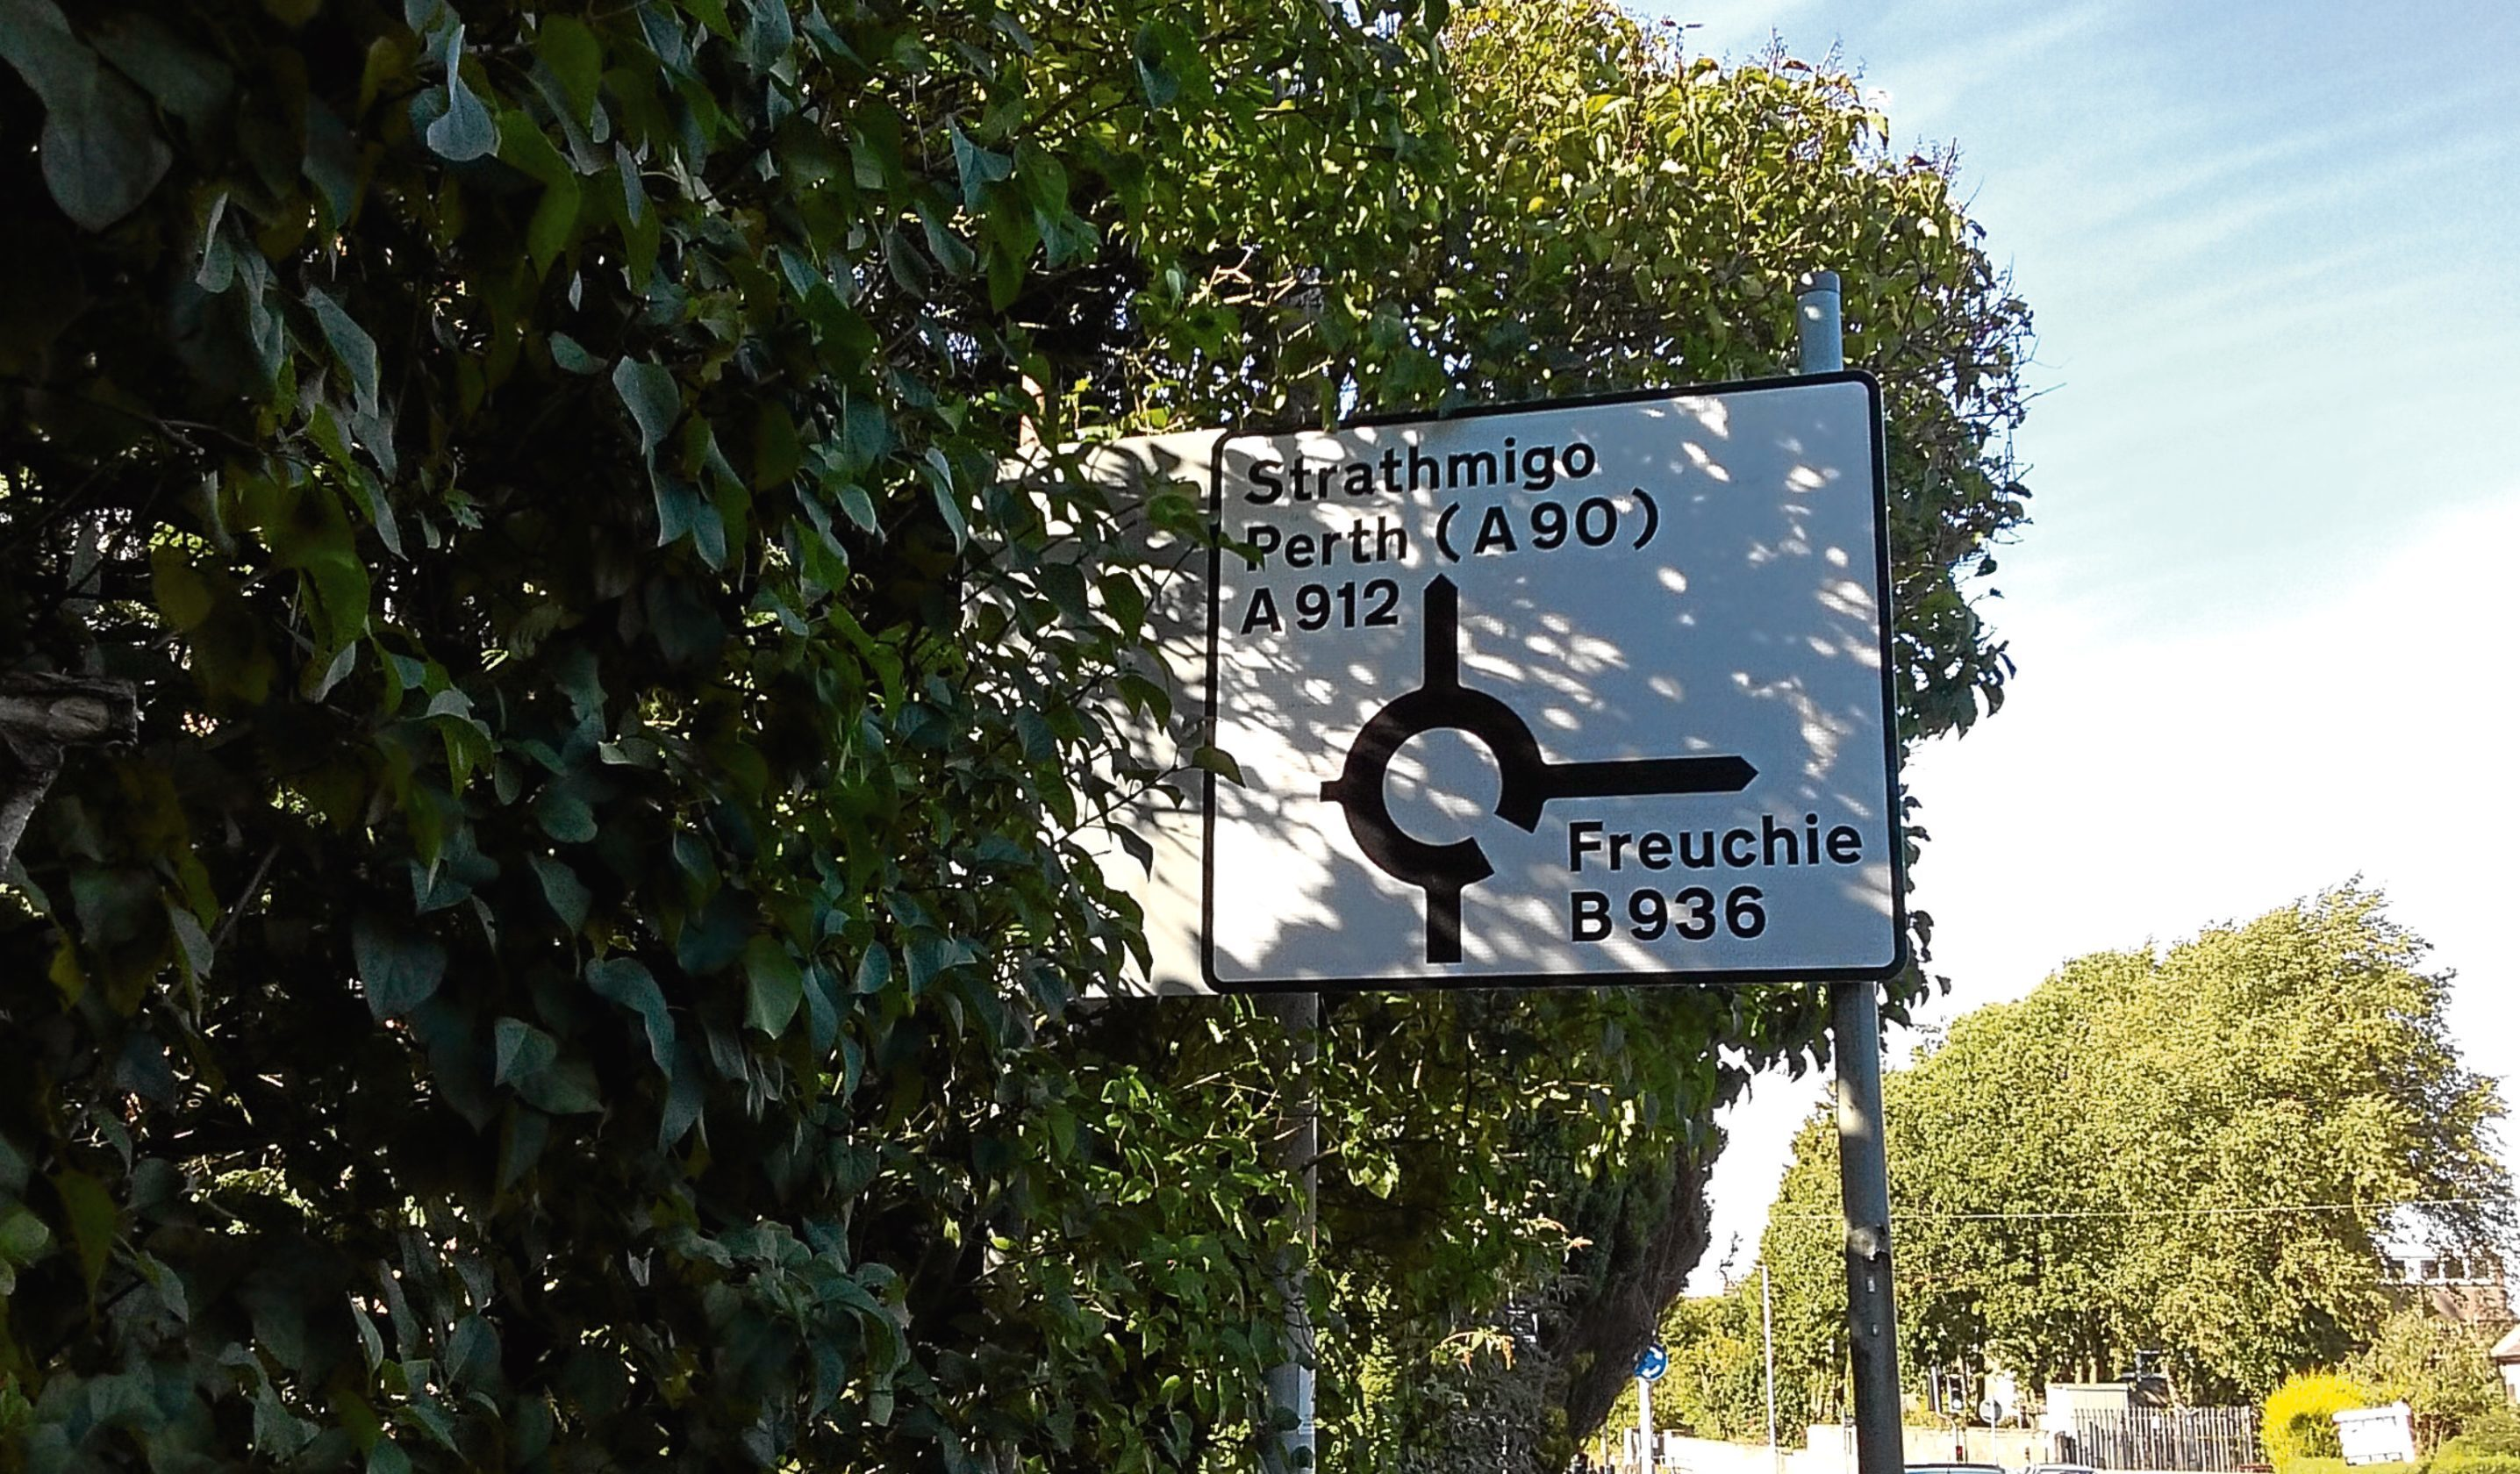 If you can spot spelling mistakes, such as on this Fife road sign, you could be more attractive to mates - possibly.